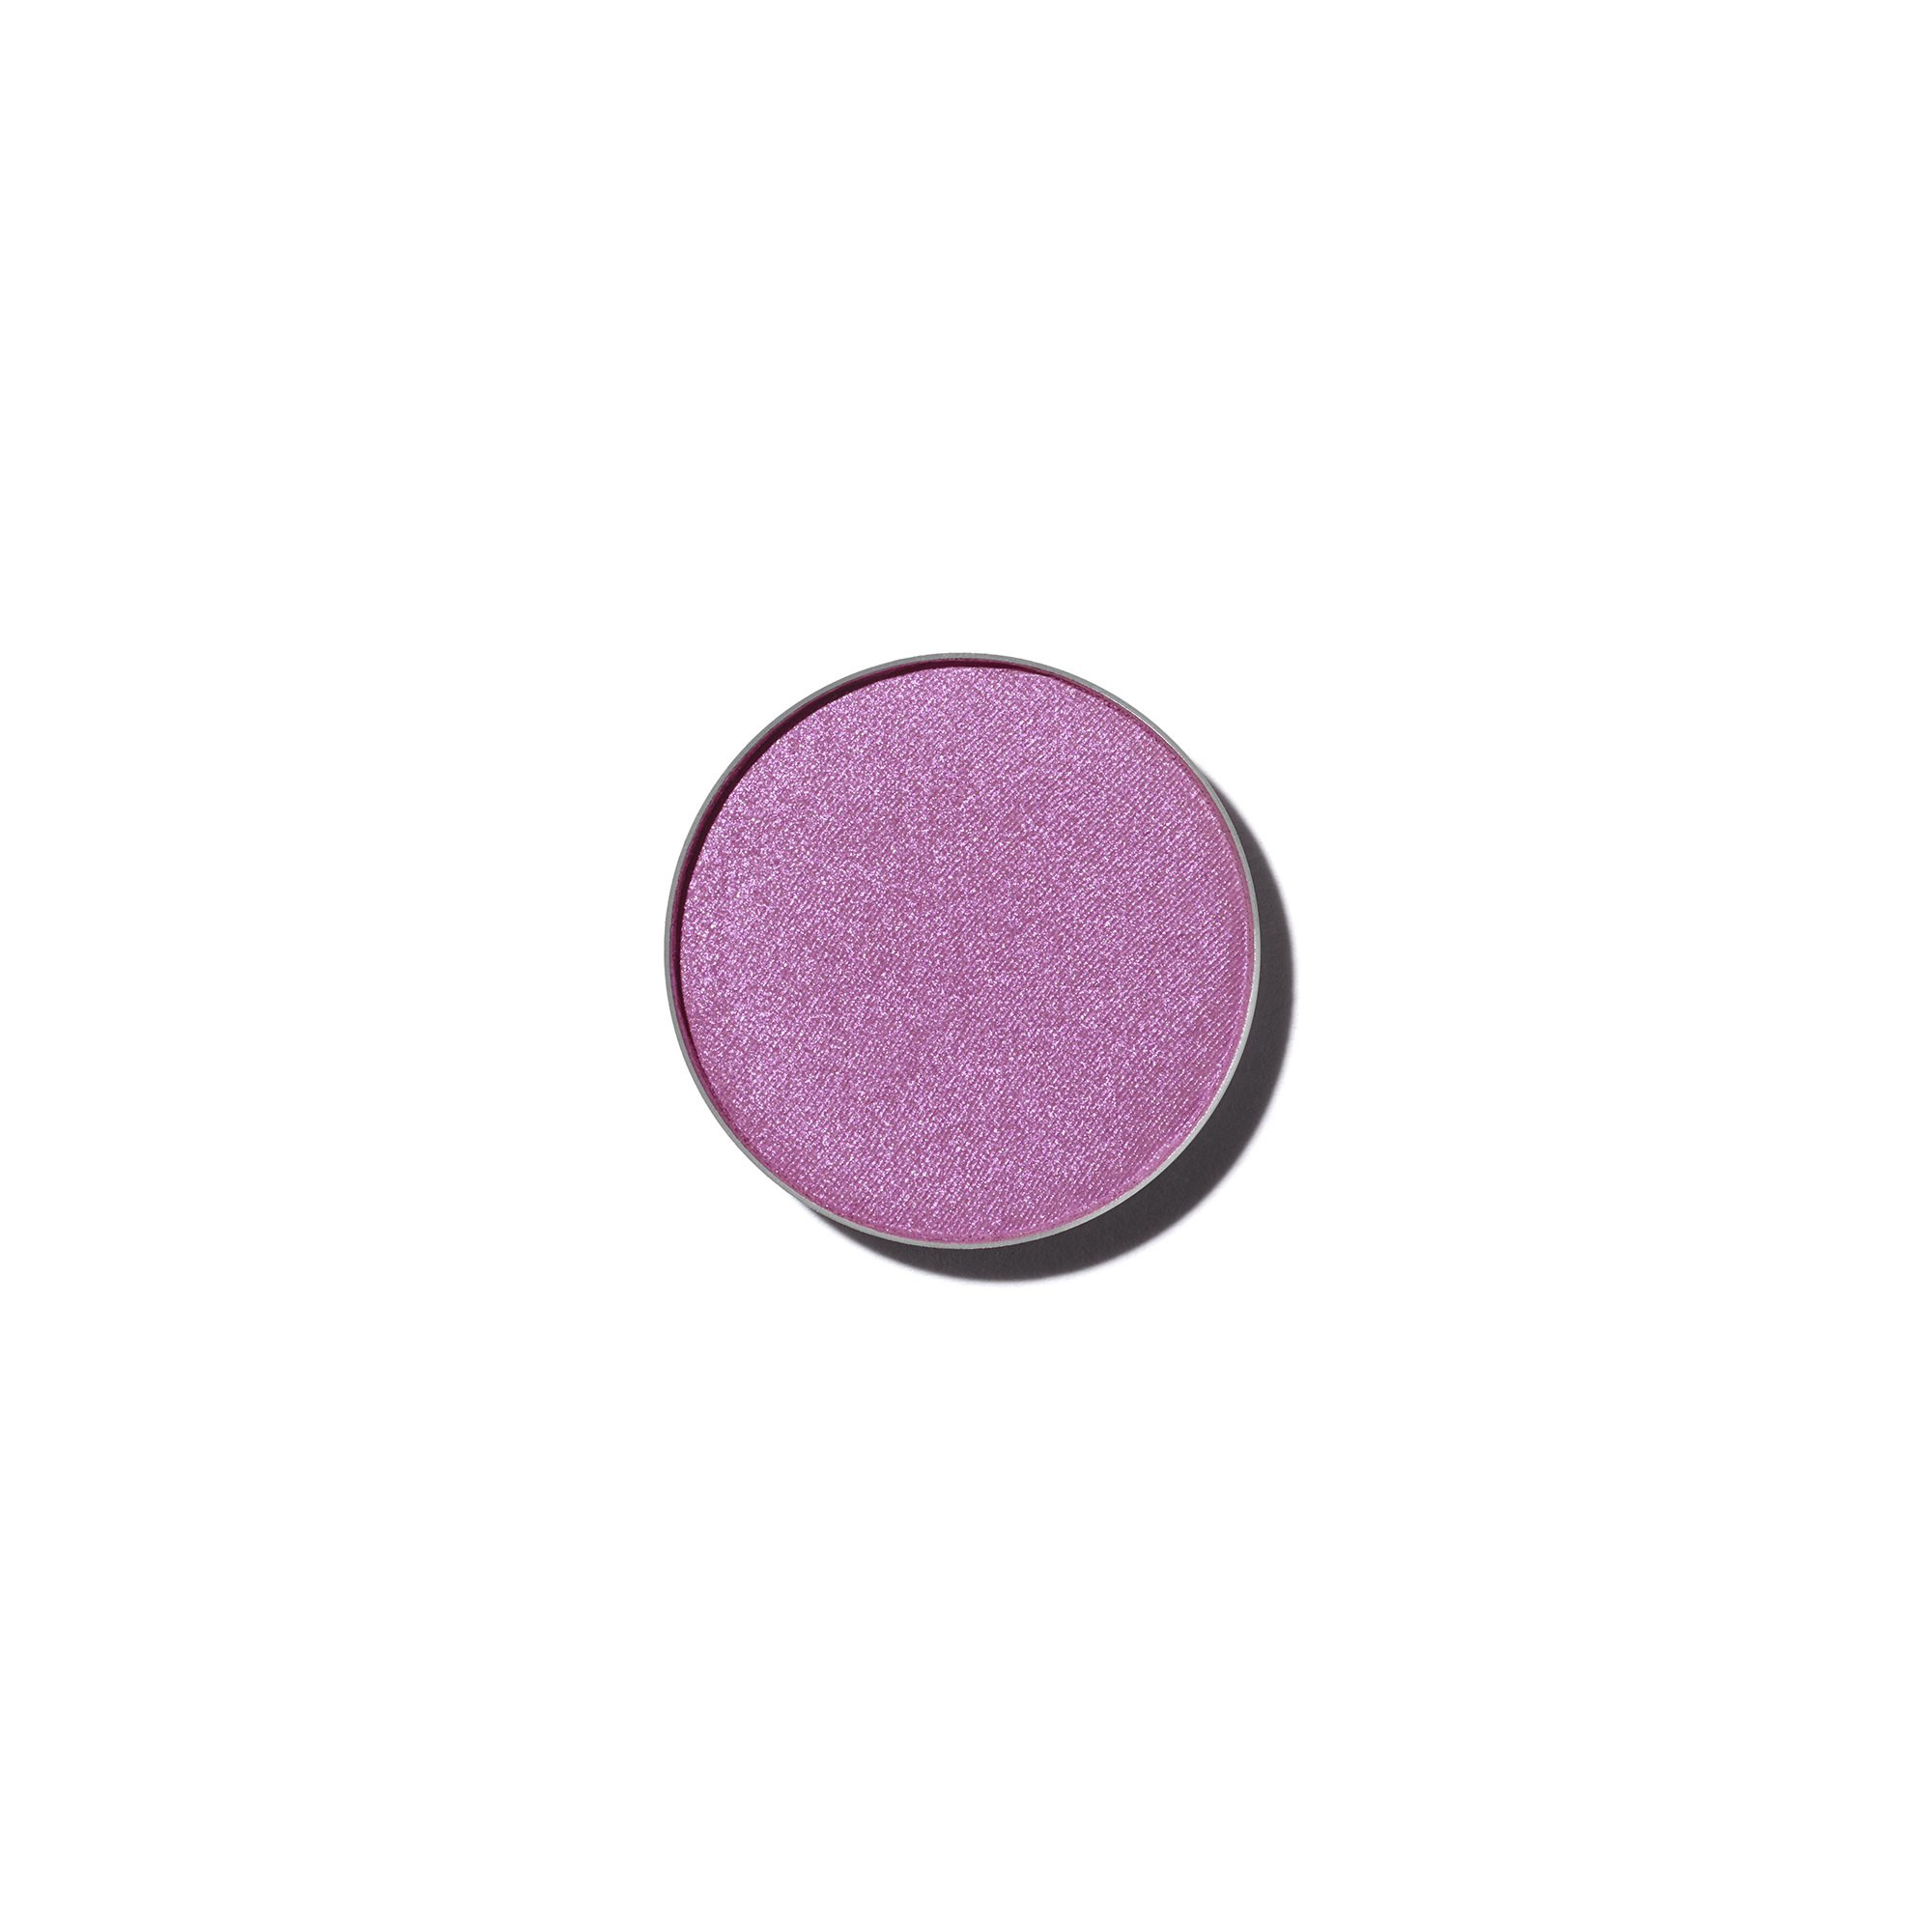 Eyeshadow Singles - Gemstone